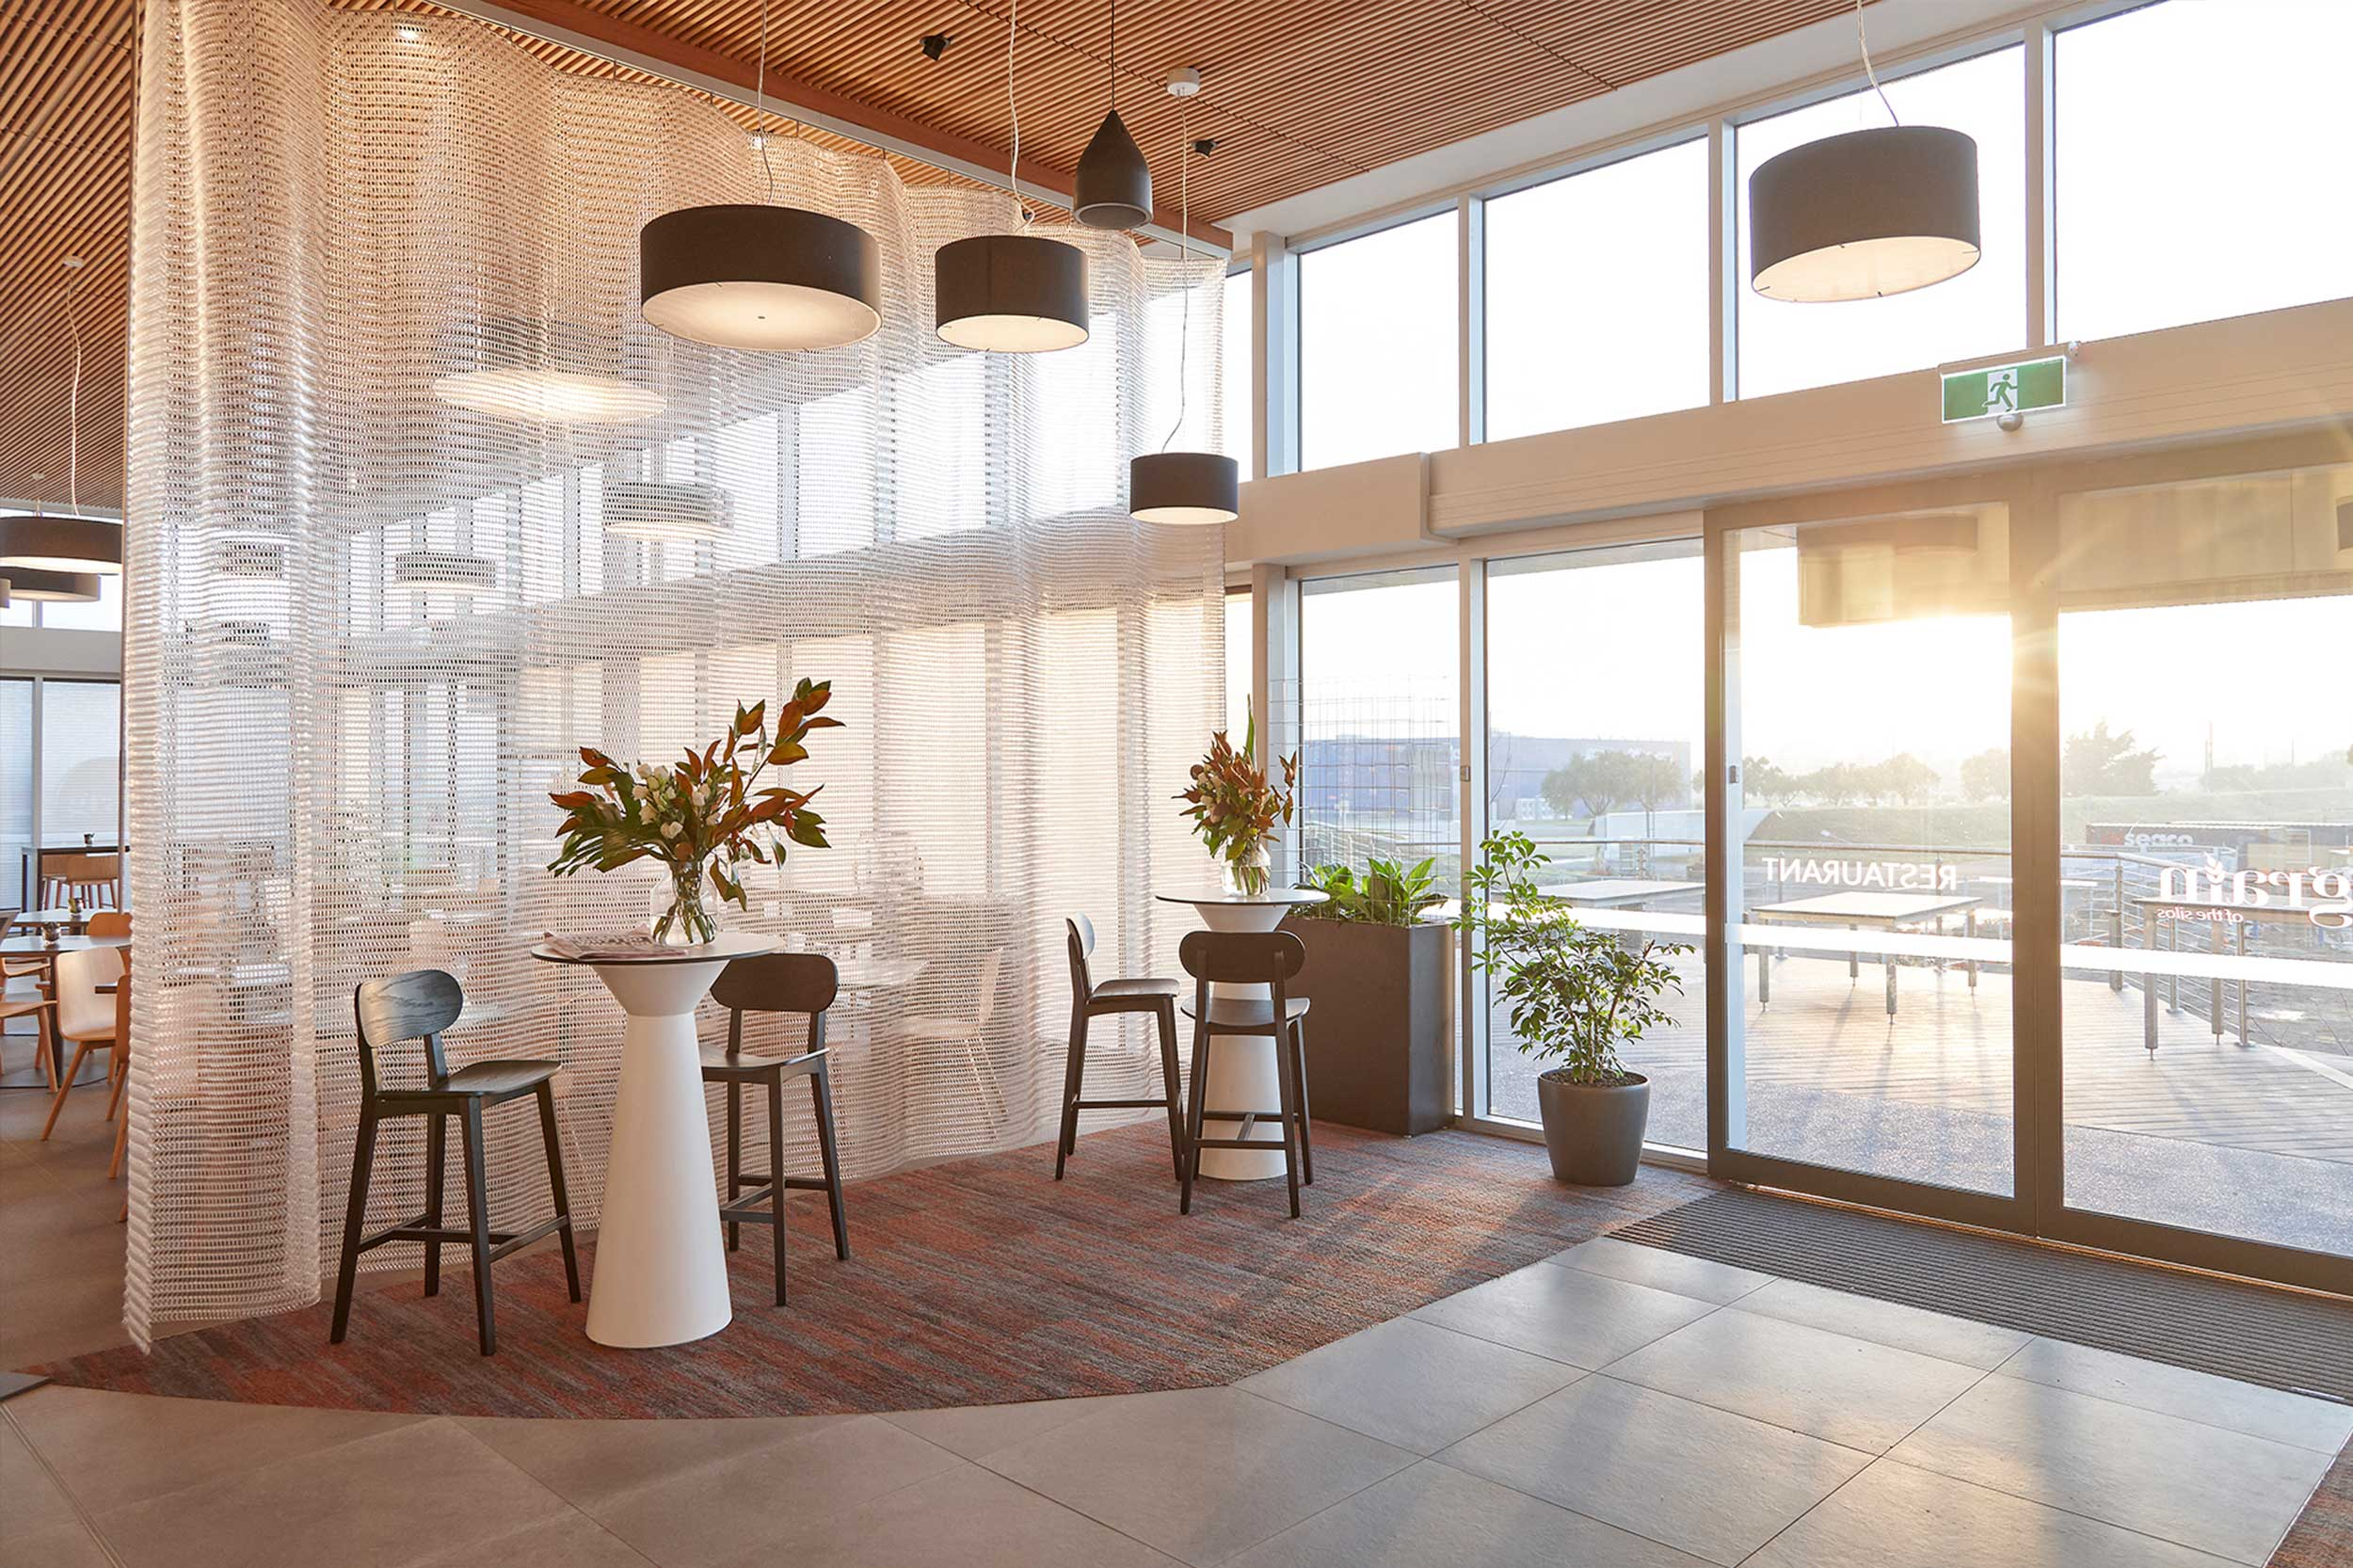 Folding Screens   Kaynemaile folding screens can be used to divide spaces temporarily then retracted when not needed. They are ideal for creating smaller, more intimate spaces within big open plan areas. Perfect for restaurants and bars, open plan offices or event spaces where flexibility is required.